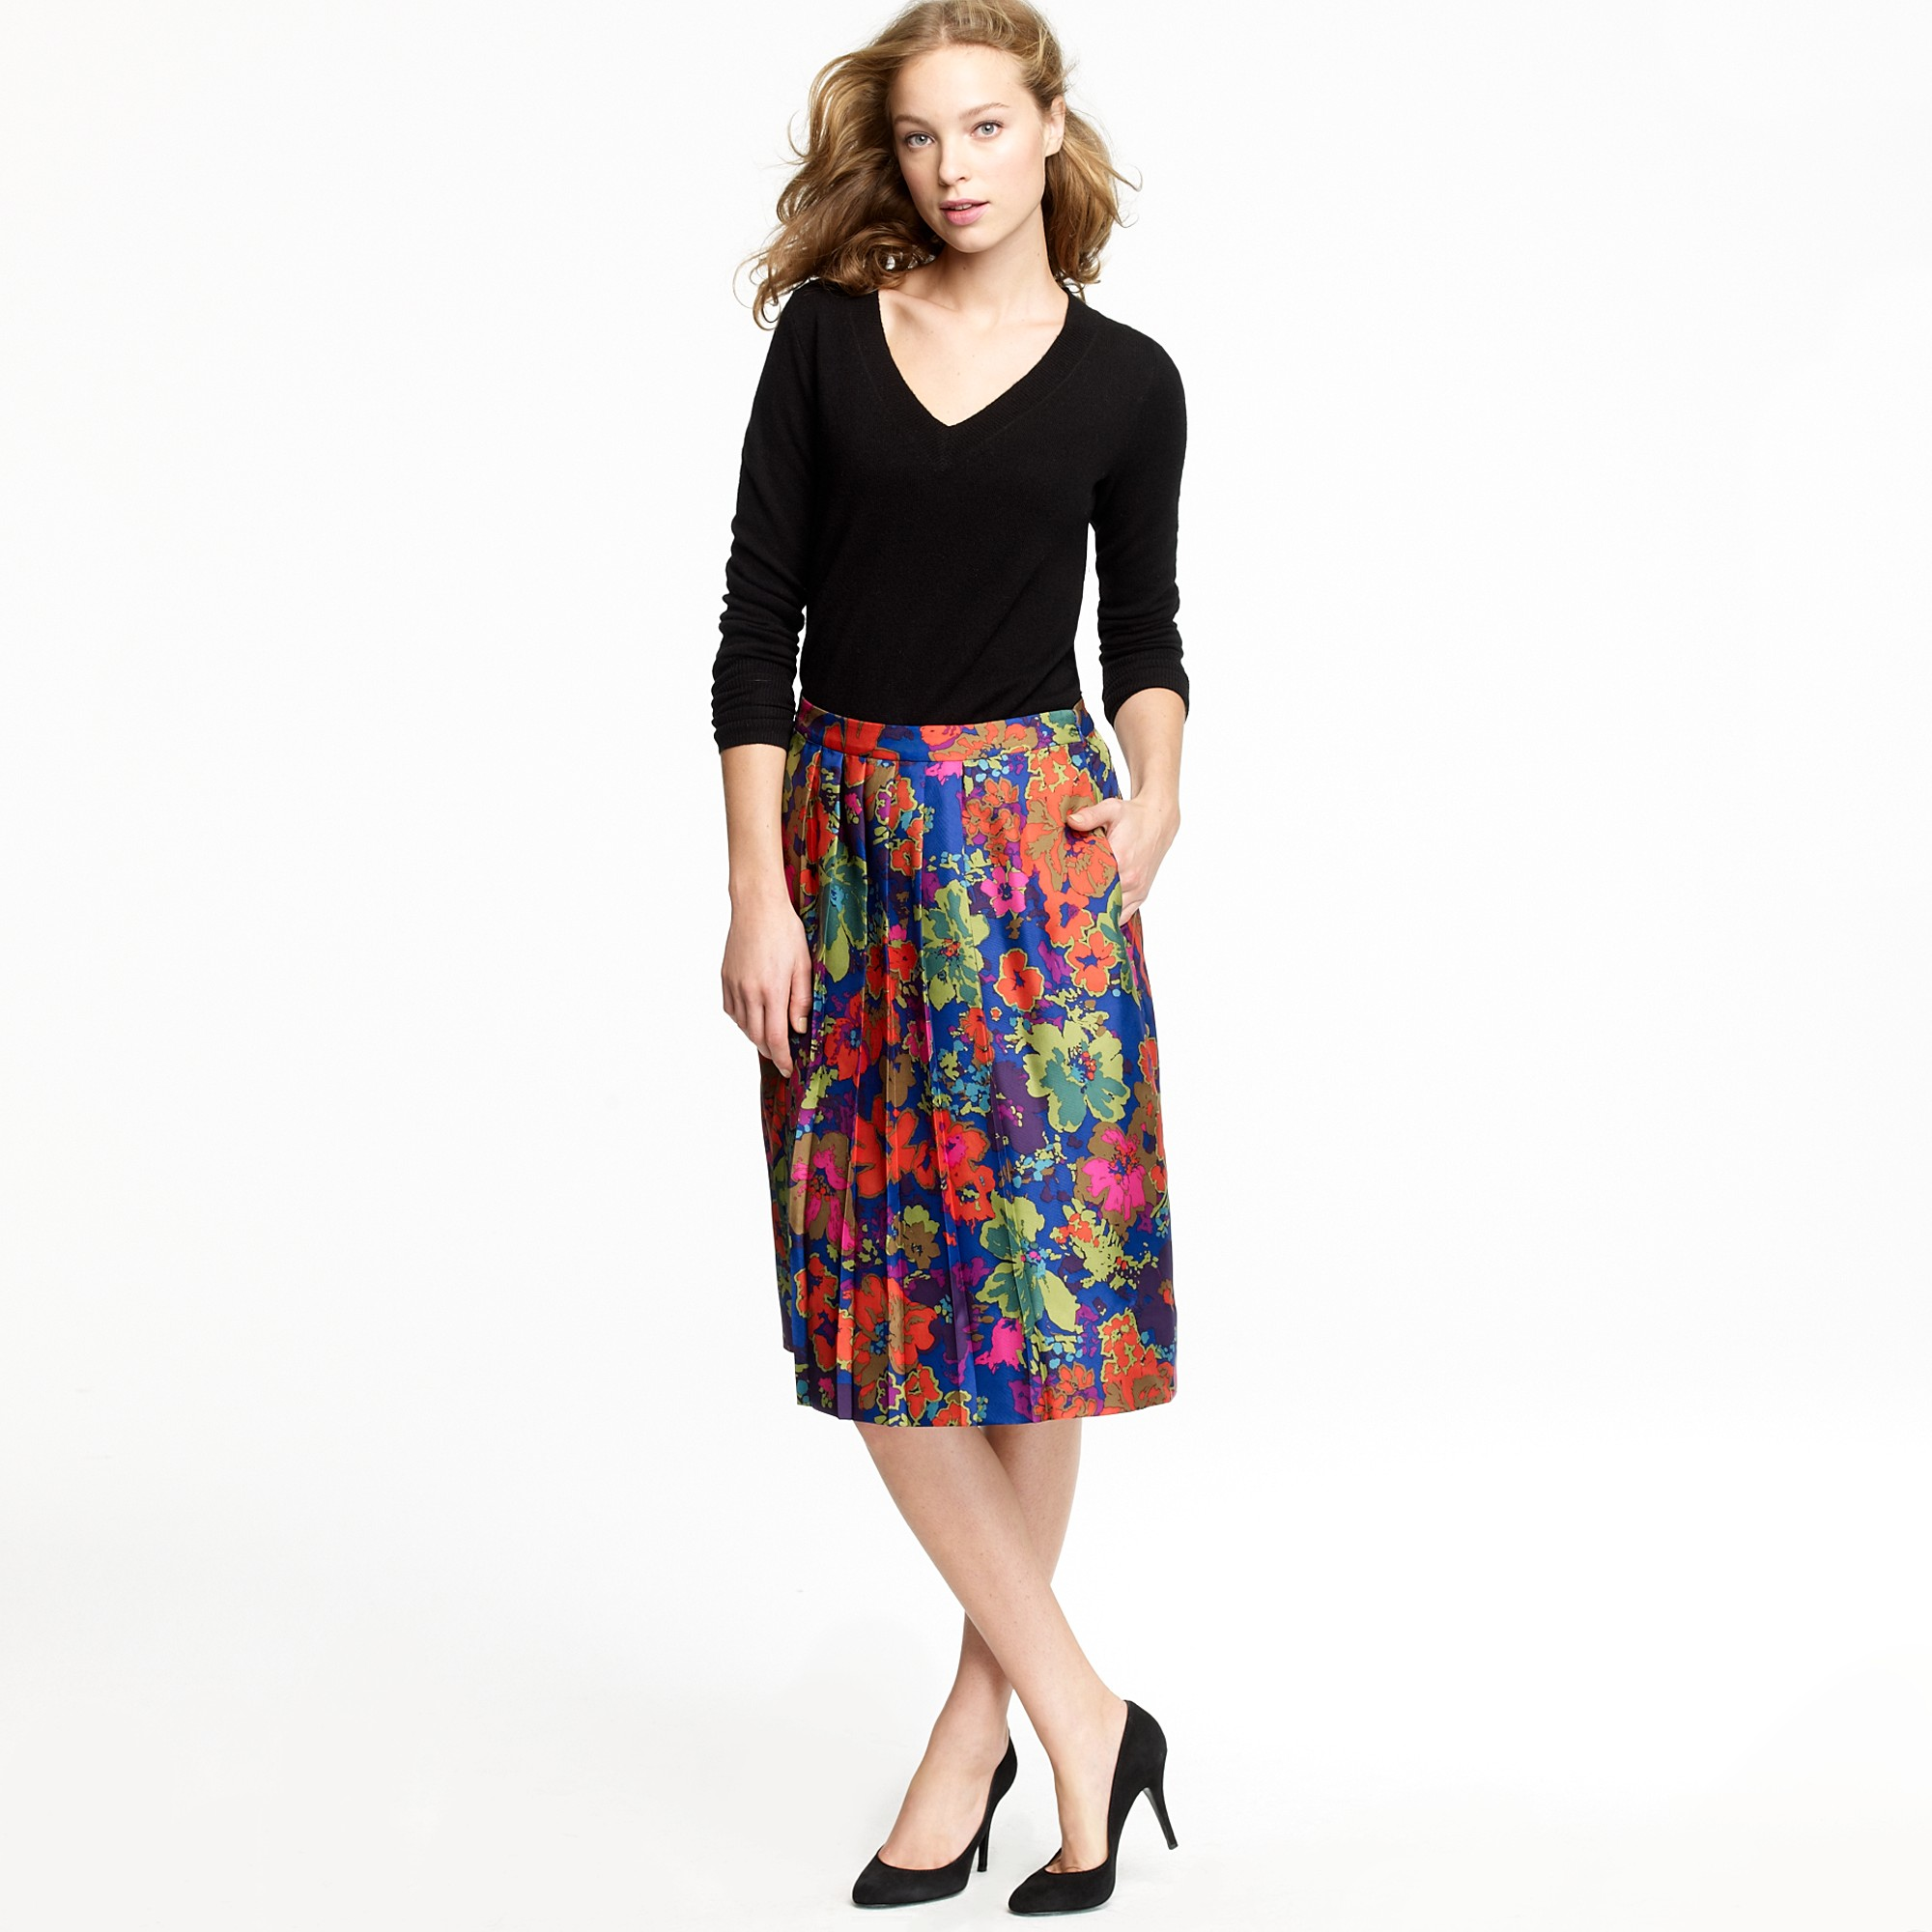 J.crew Pleated A-line Skirt in Ashbury Floral in Blue | Lyst